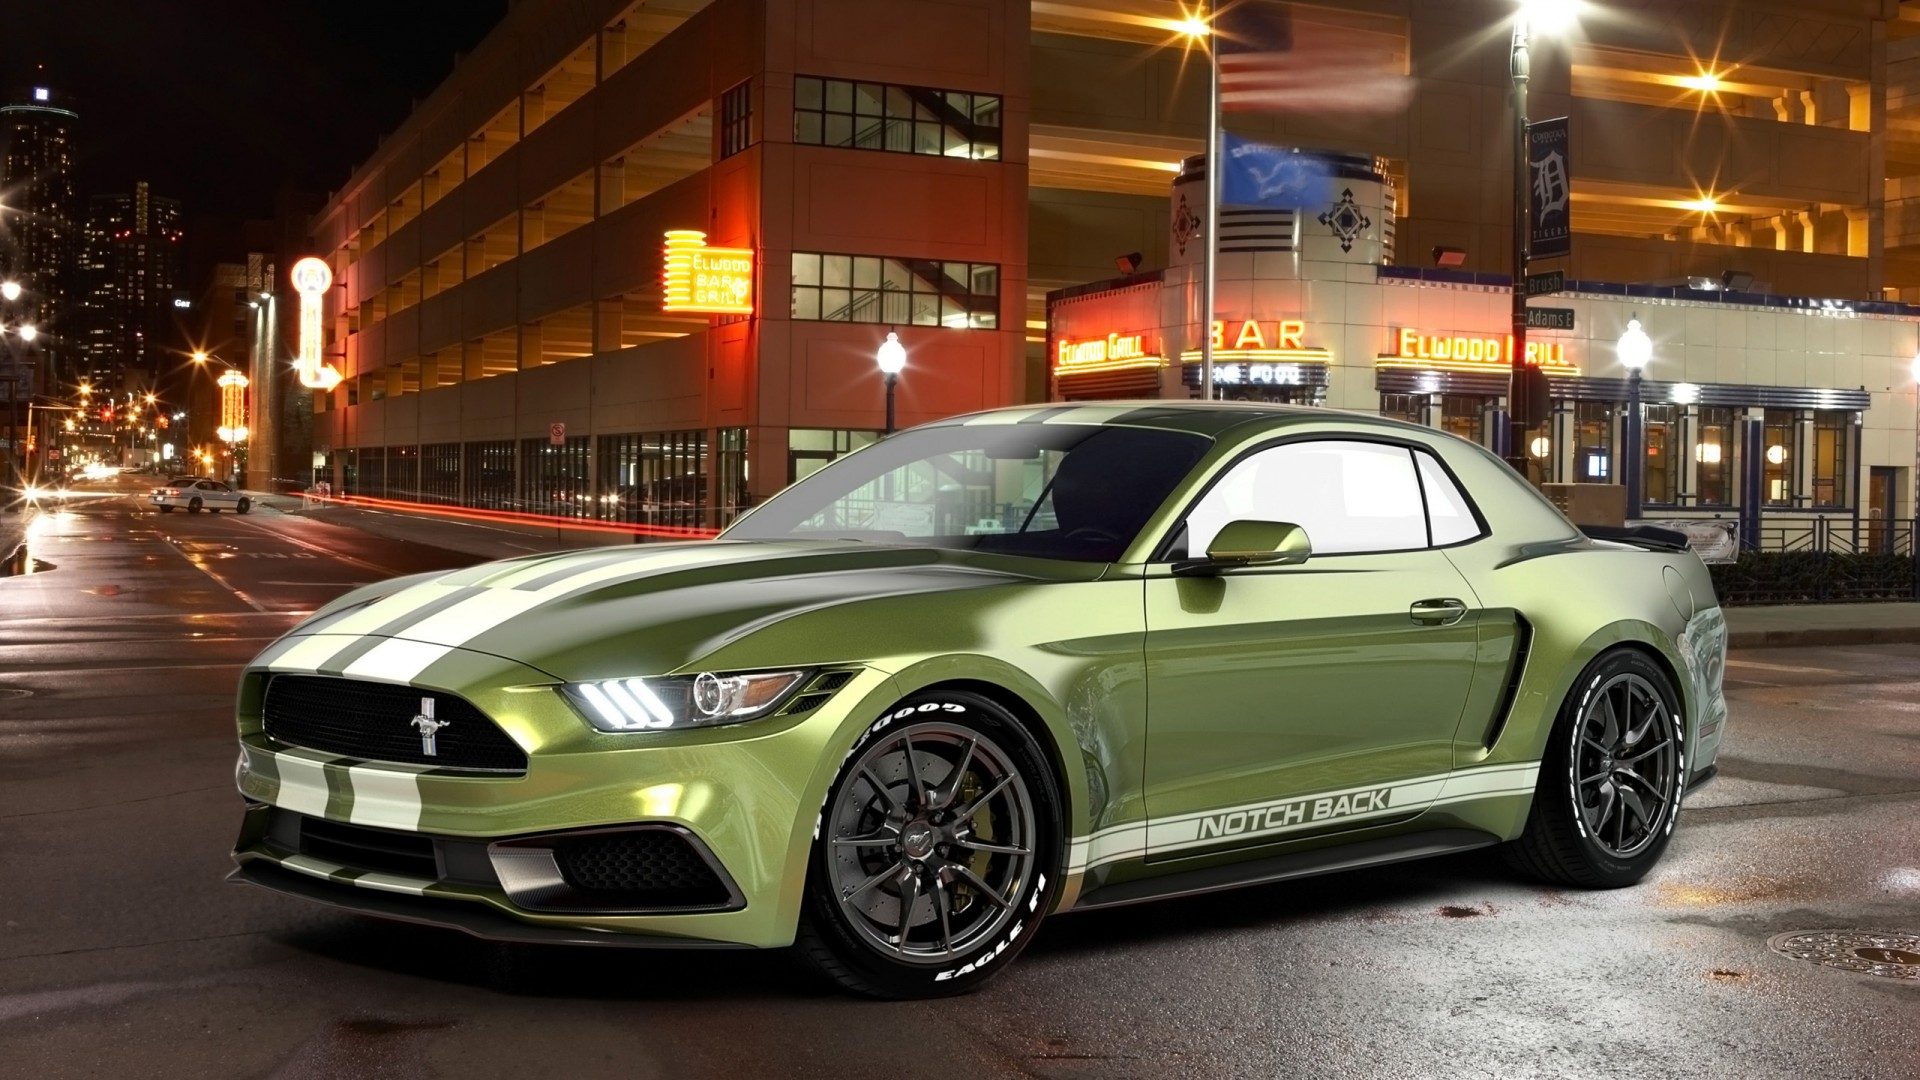 Lincoln Wallpaper Car 2017 Ford Mustang Notchback Design 3 Wallpaper Hd Car